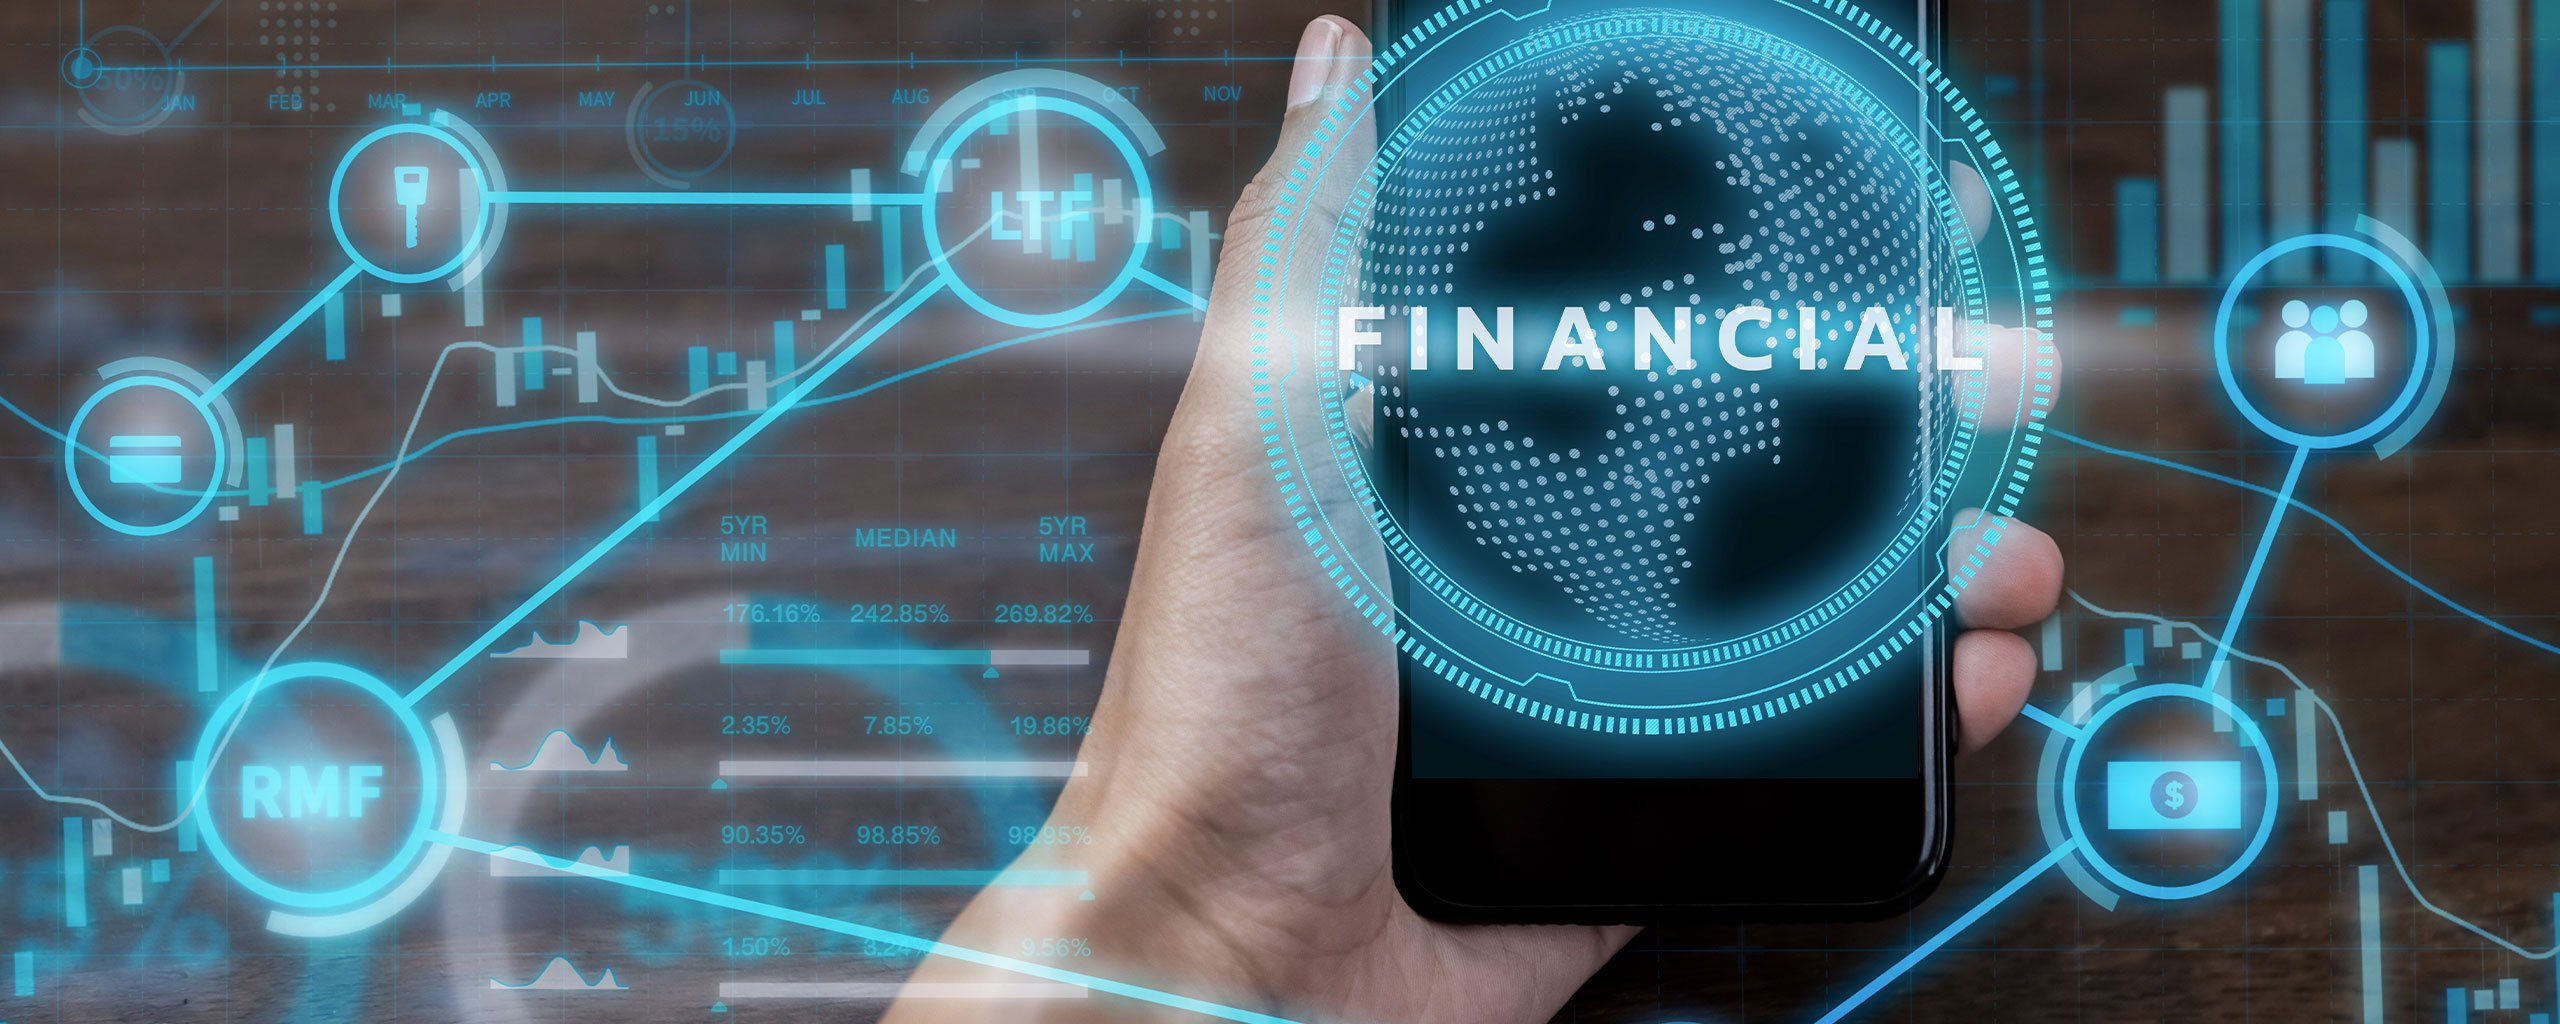 Why the Financial Services Sector is Banking on Digital Transformation